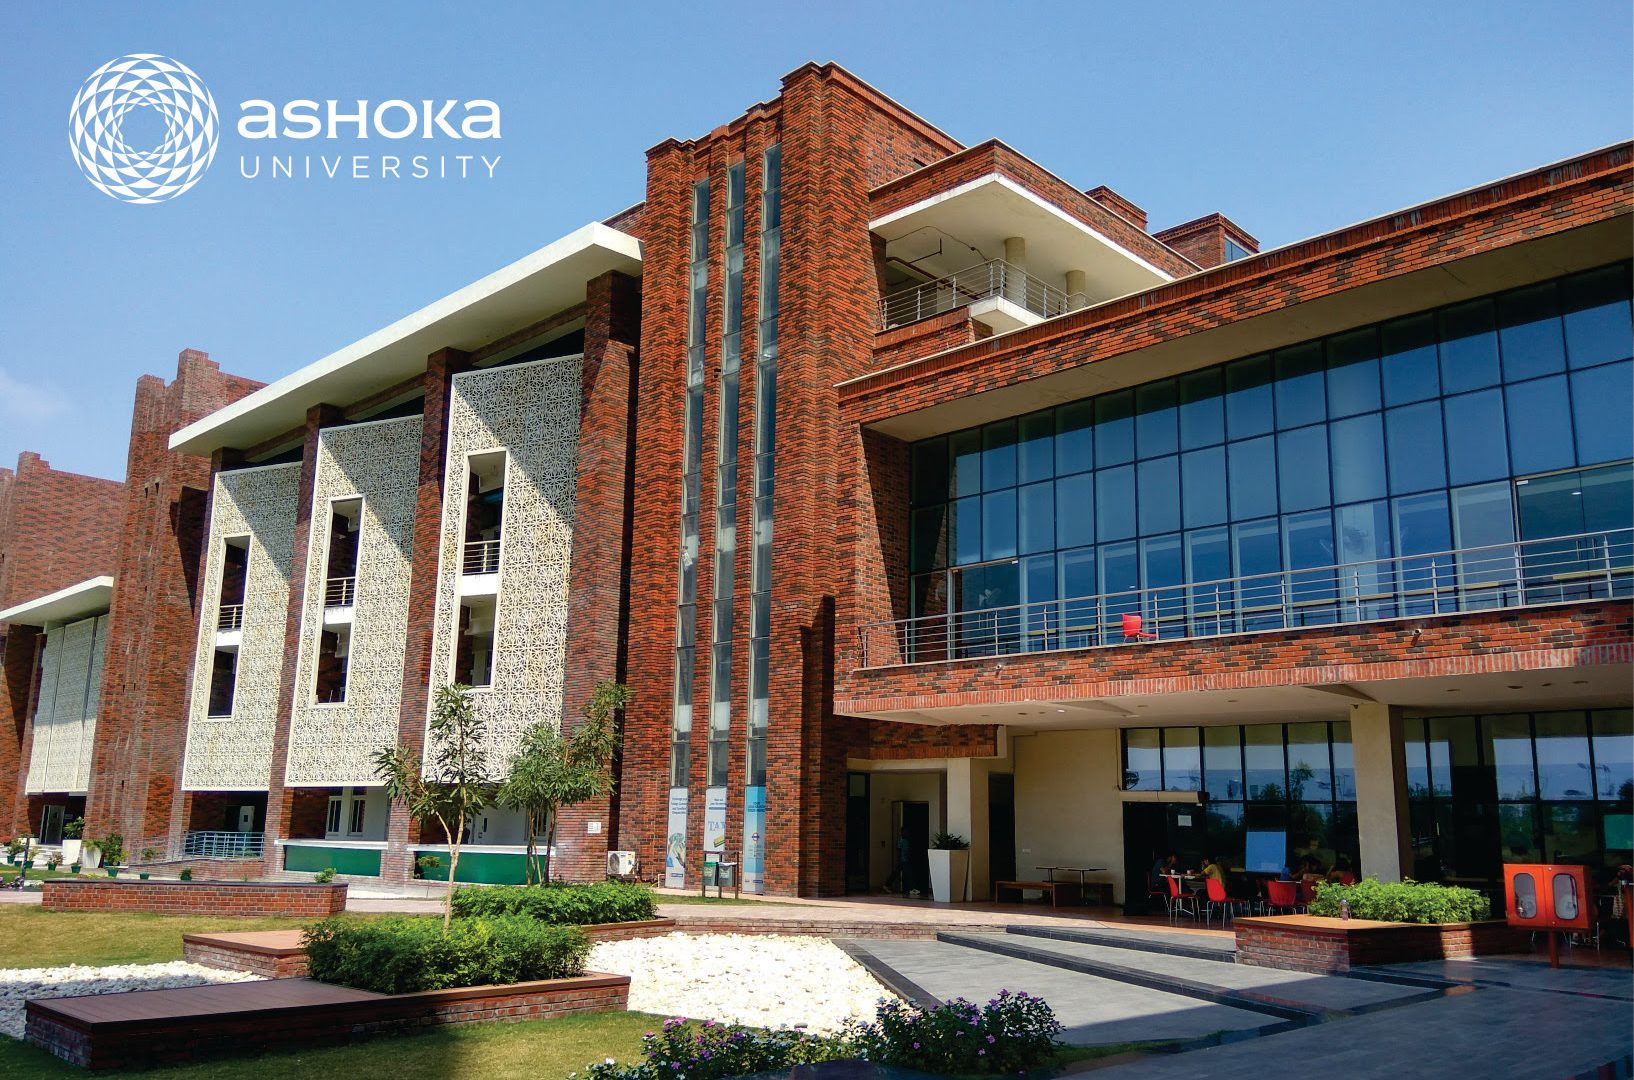 Summer Study Abroad @ Ashoka University in India